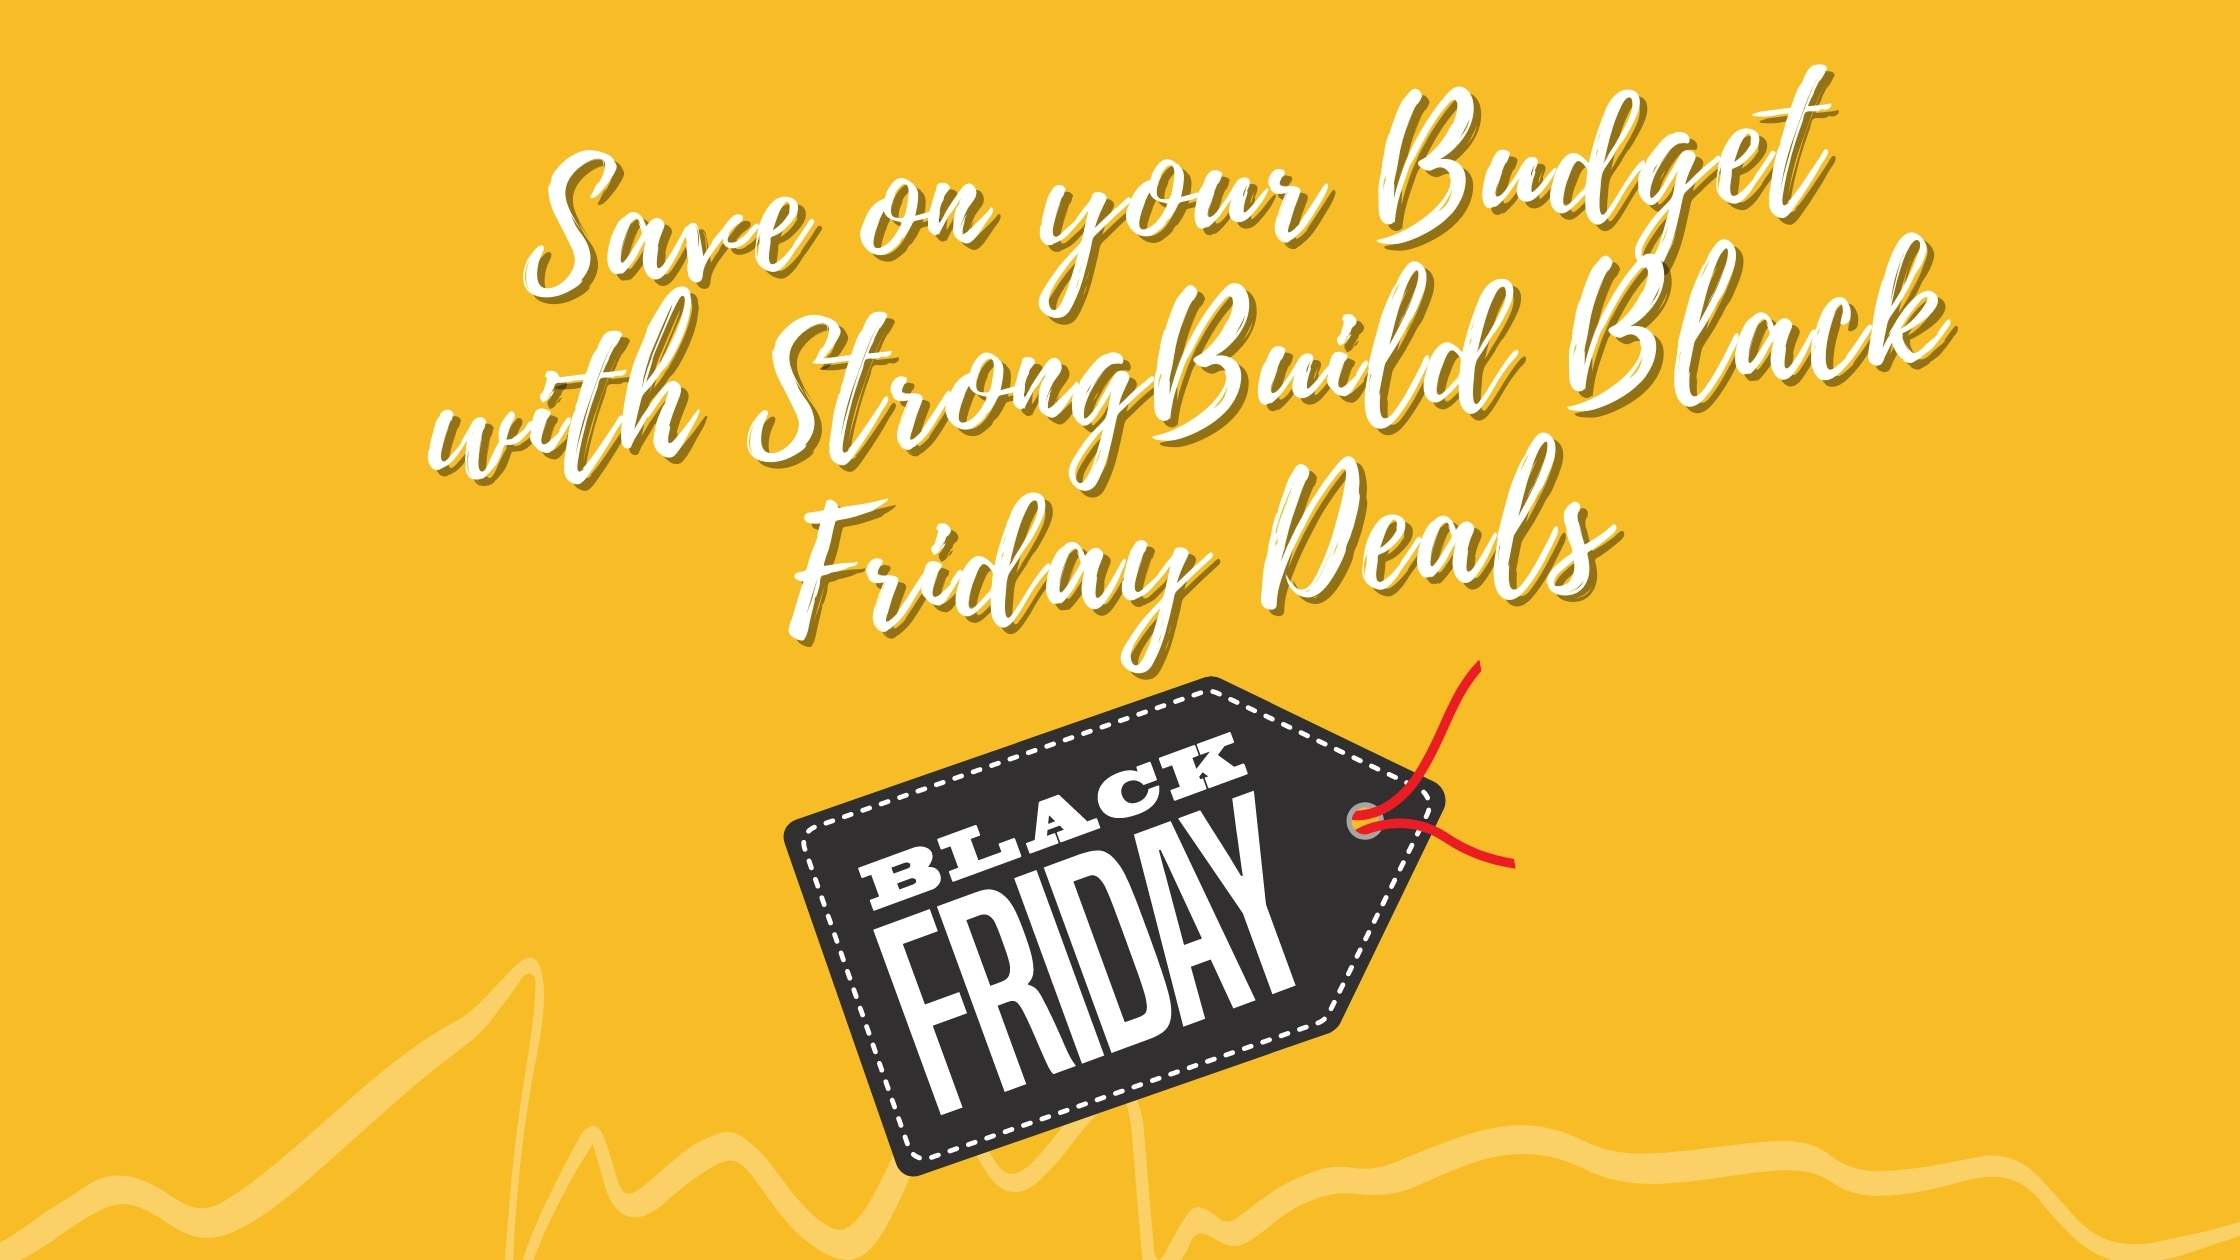 Save on your budget with Strong Build Black Friday Deals!